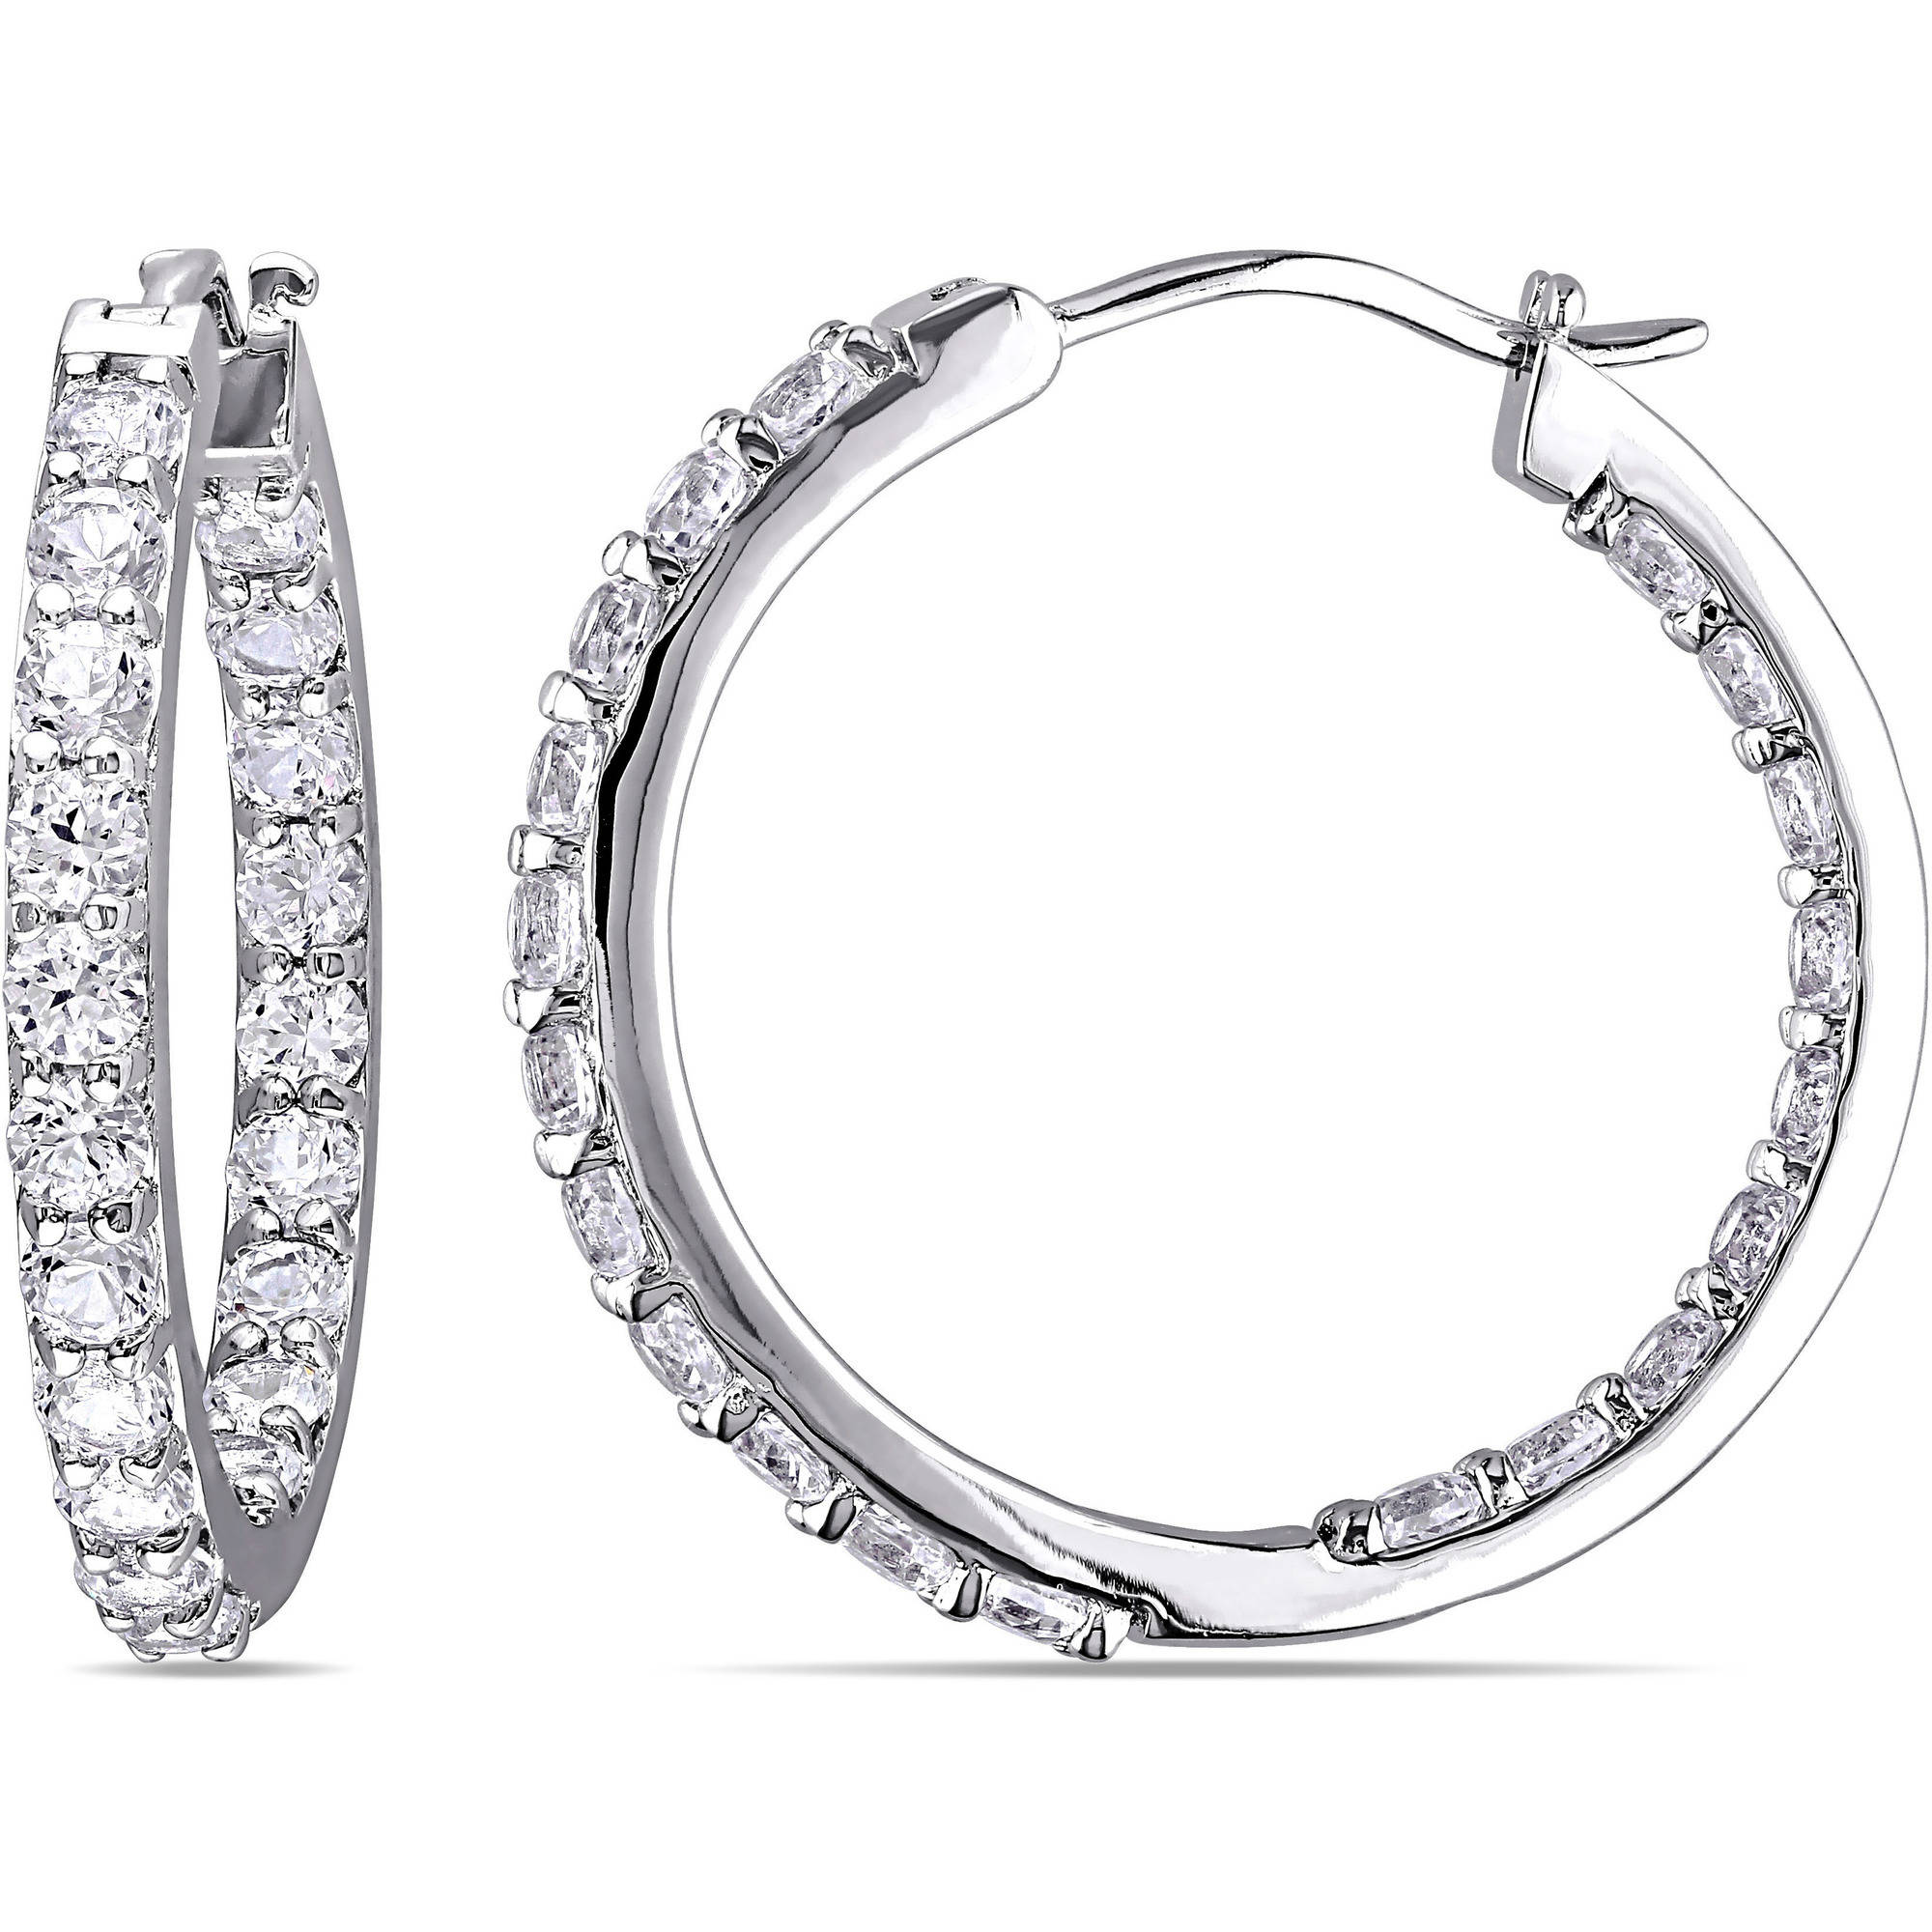 Miabella 3.6 Carat T.G.W. White Sapphire Sterling Silver Hoop Earrings